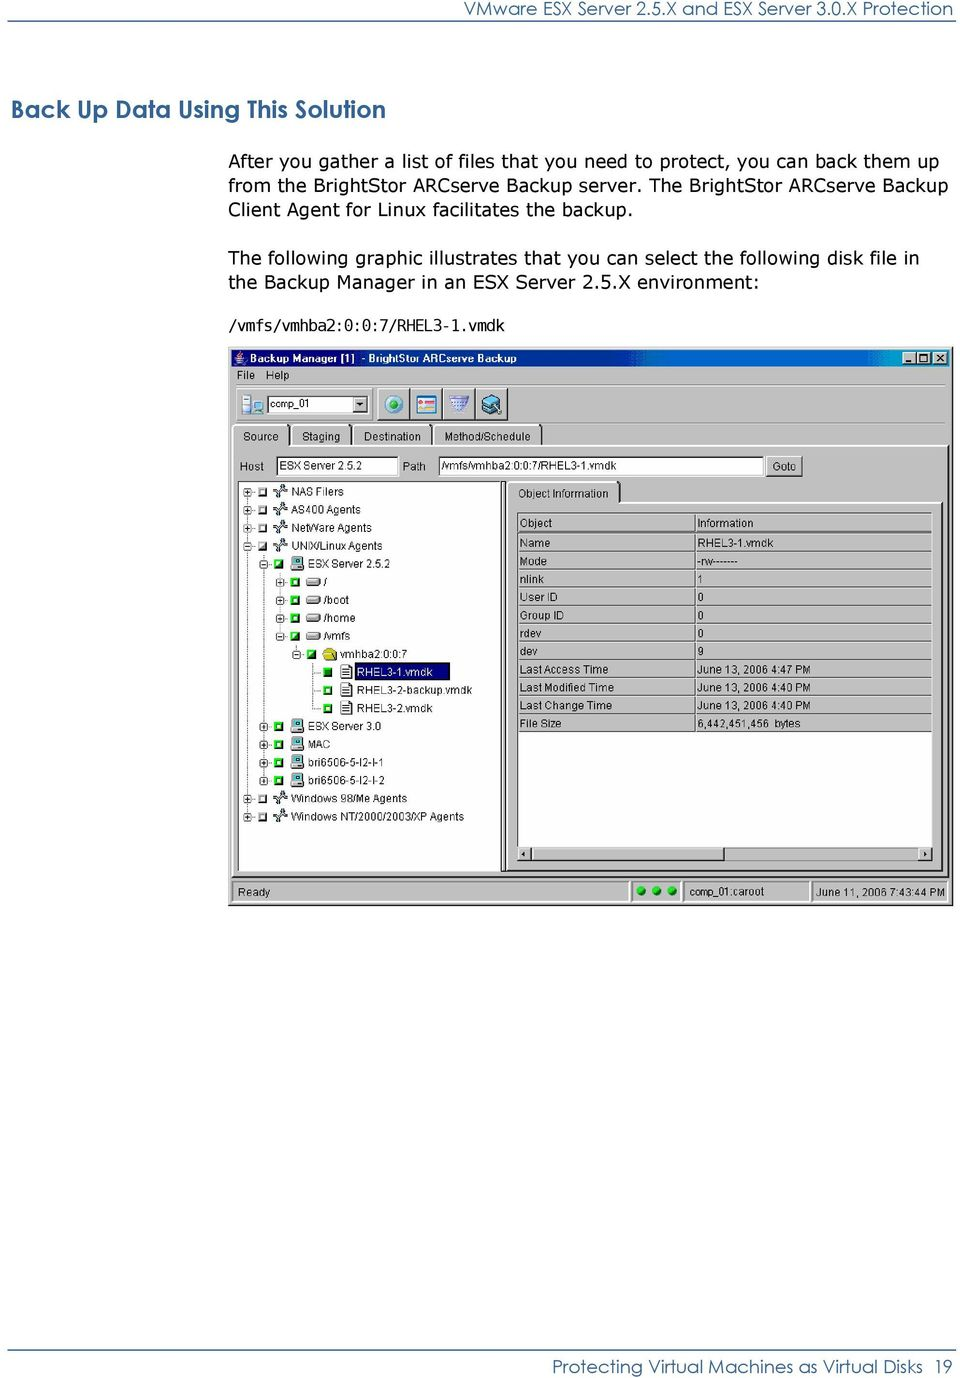 from the BrightStor ARCserve Backup server. The BrightStor ARCserve Backup Client Agent for Linux facilitates the backup.